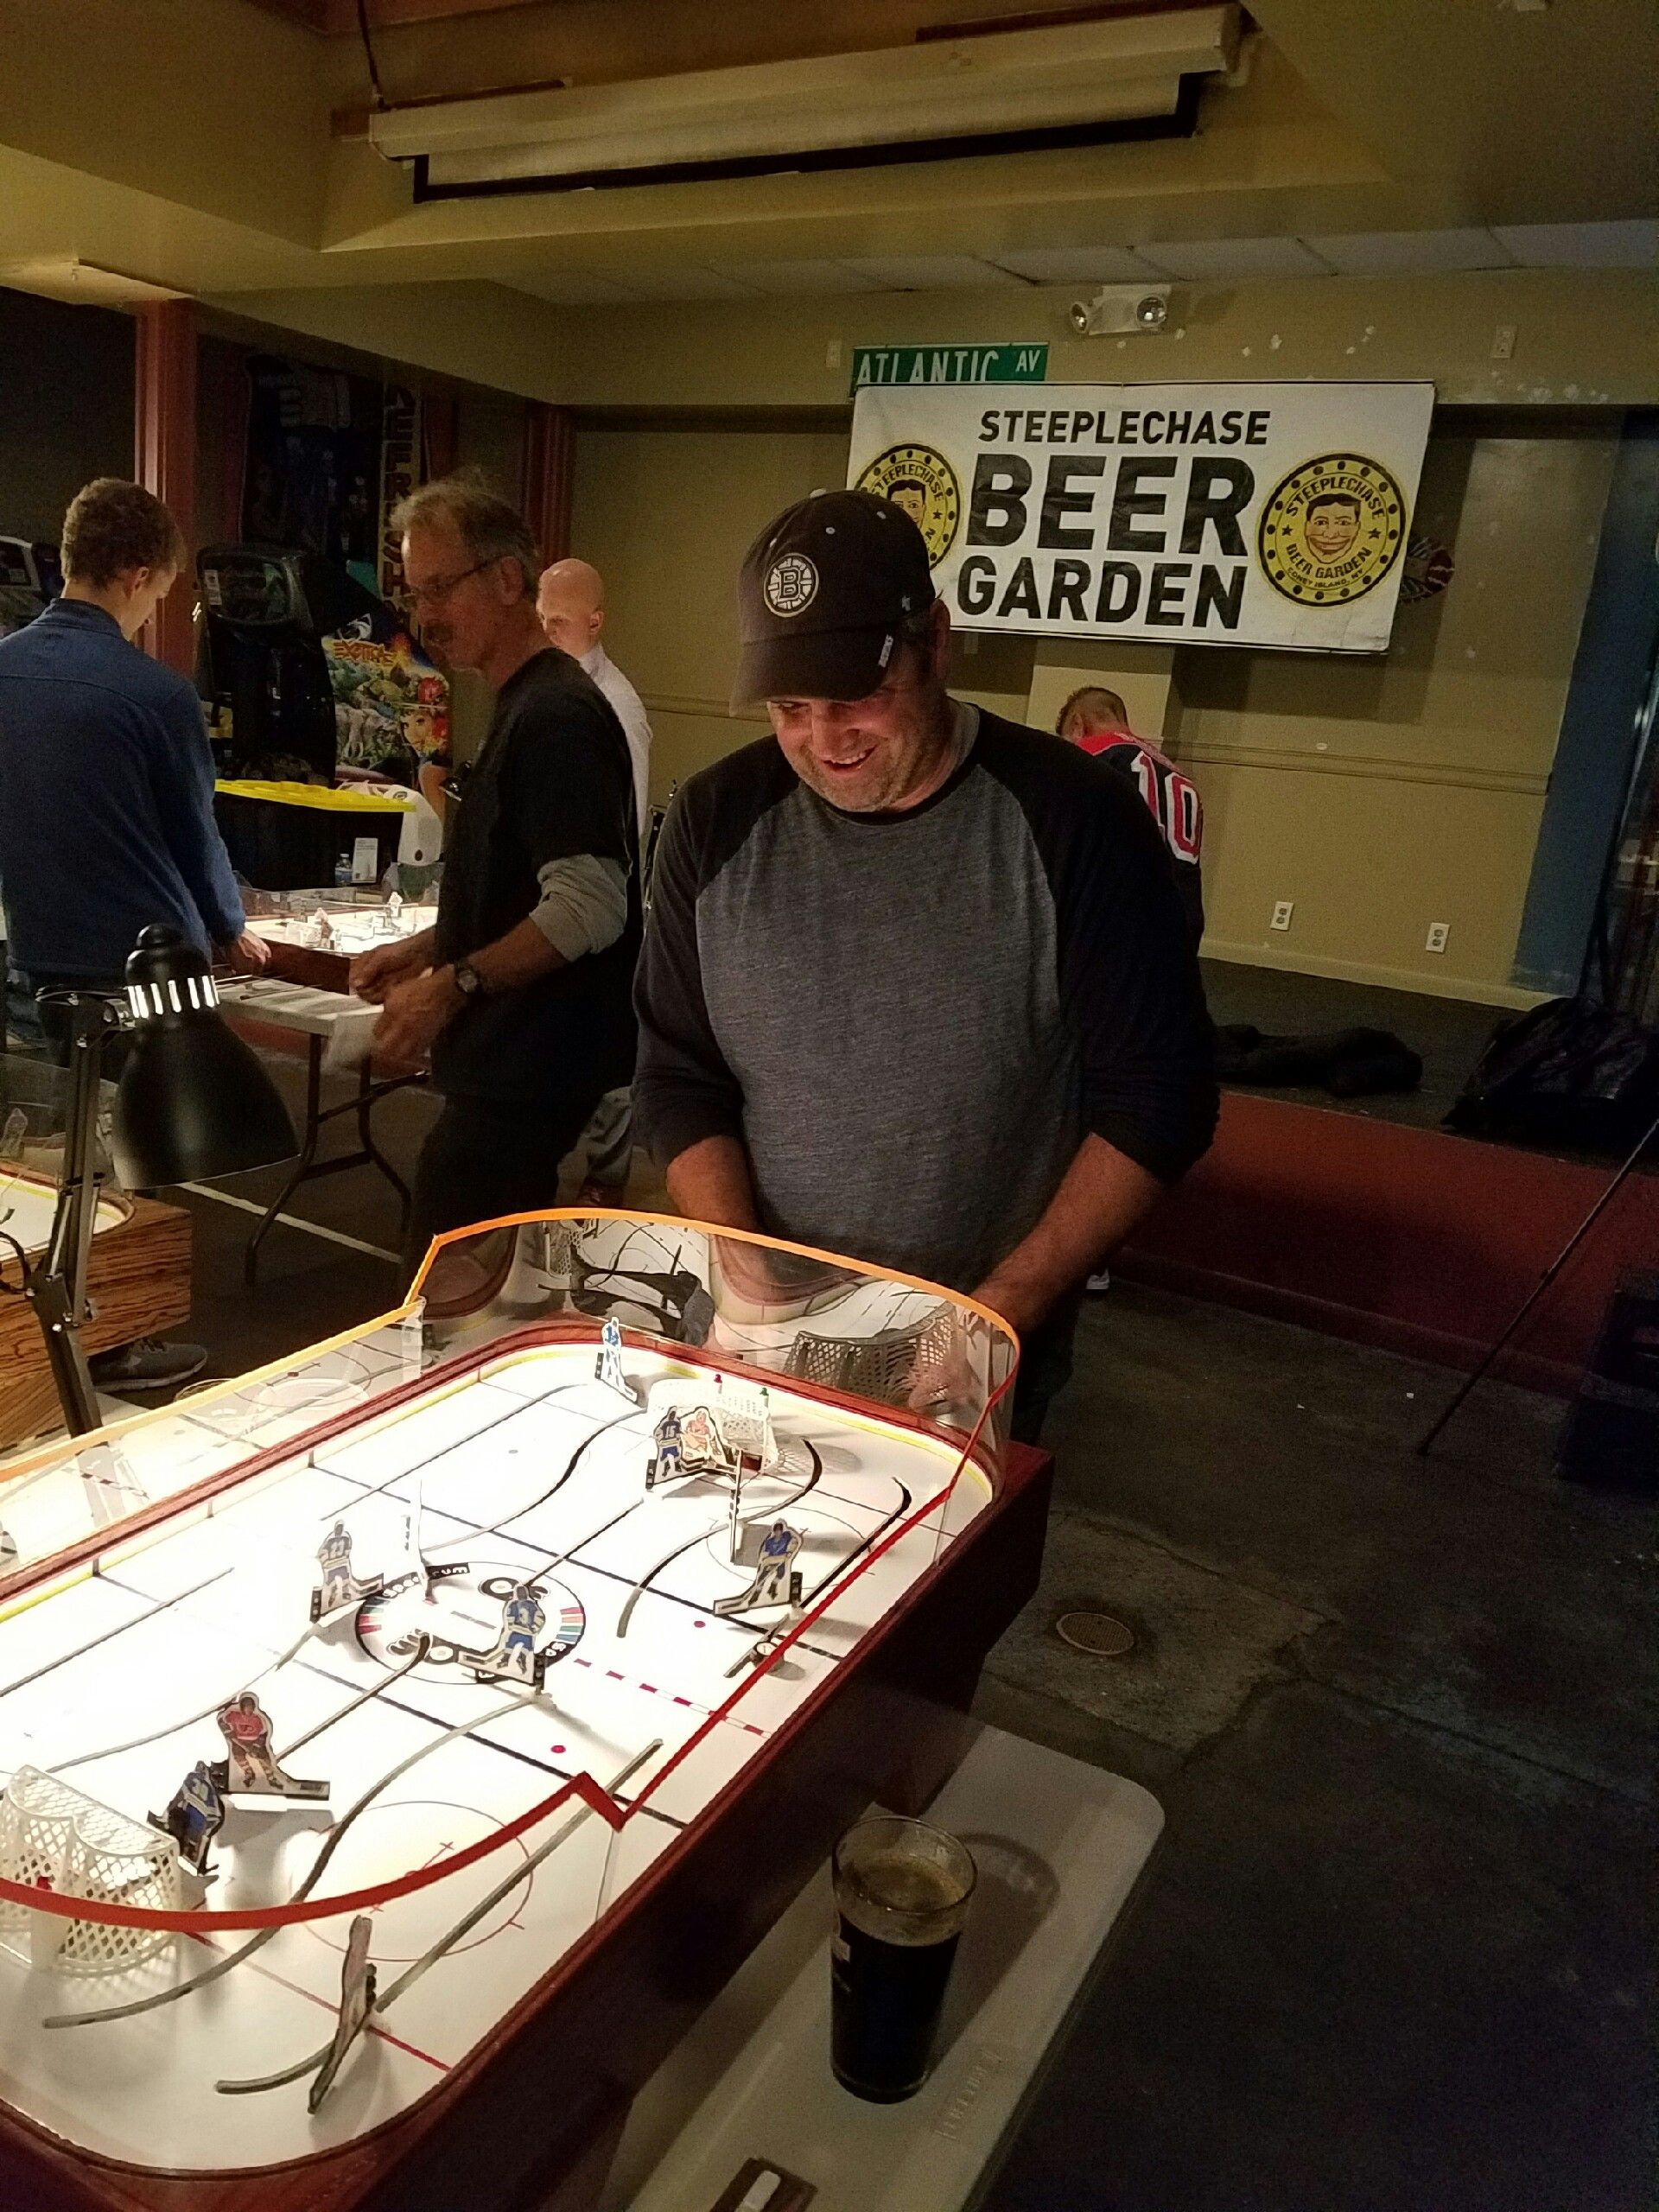 new york table hockey league news the differences in each one of them require a unique skill set that is acquired through hard work and practice by it s